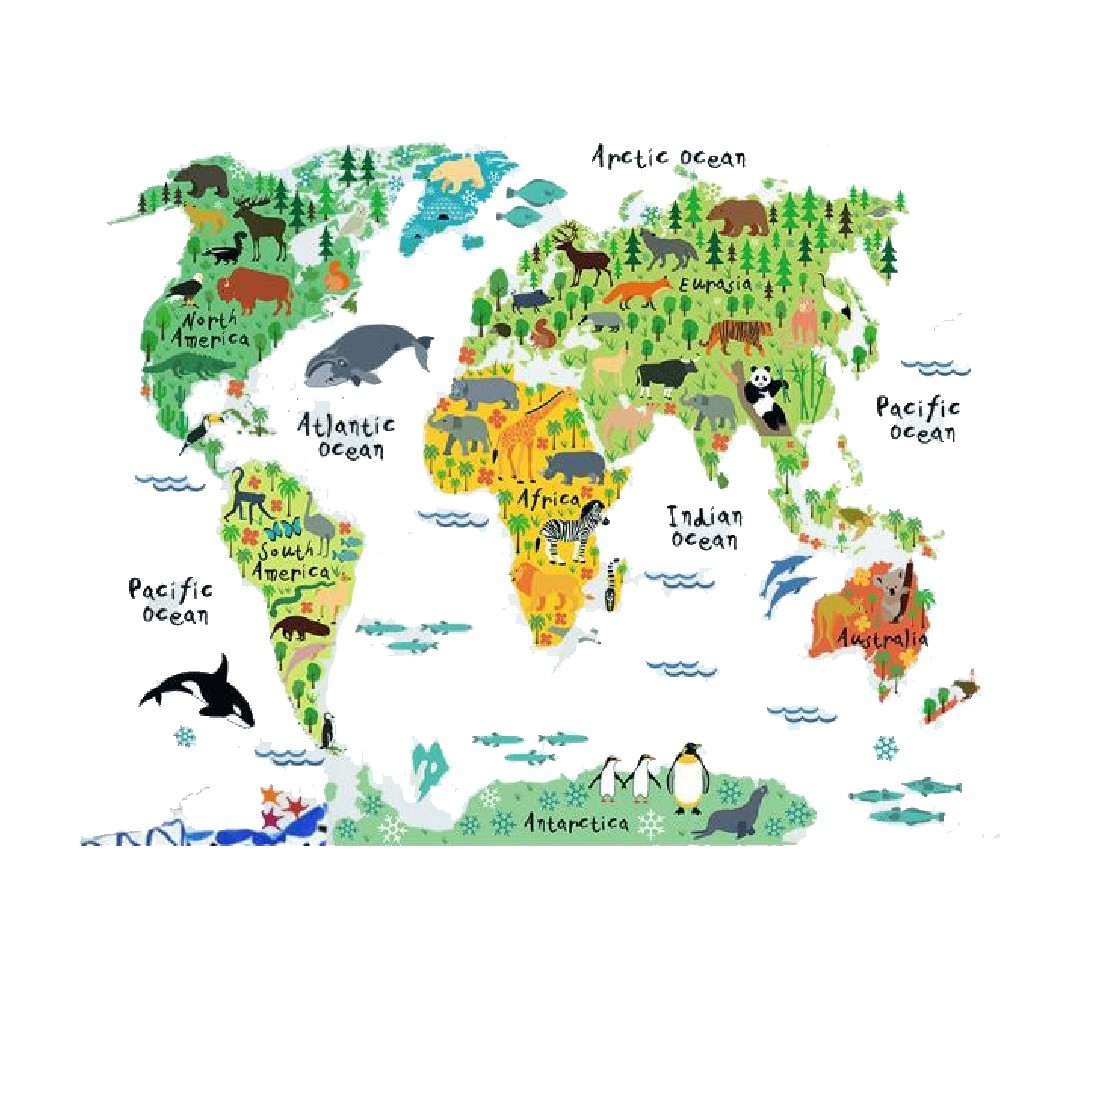 Removable diy mural wallpaper animal world map wall stickers decal removable diy mural wallpaper animal world map wall stickers decal for home decoration in wall stickers from home garden on aliexpress alibaba group amipublicfo Images